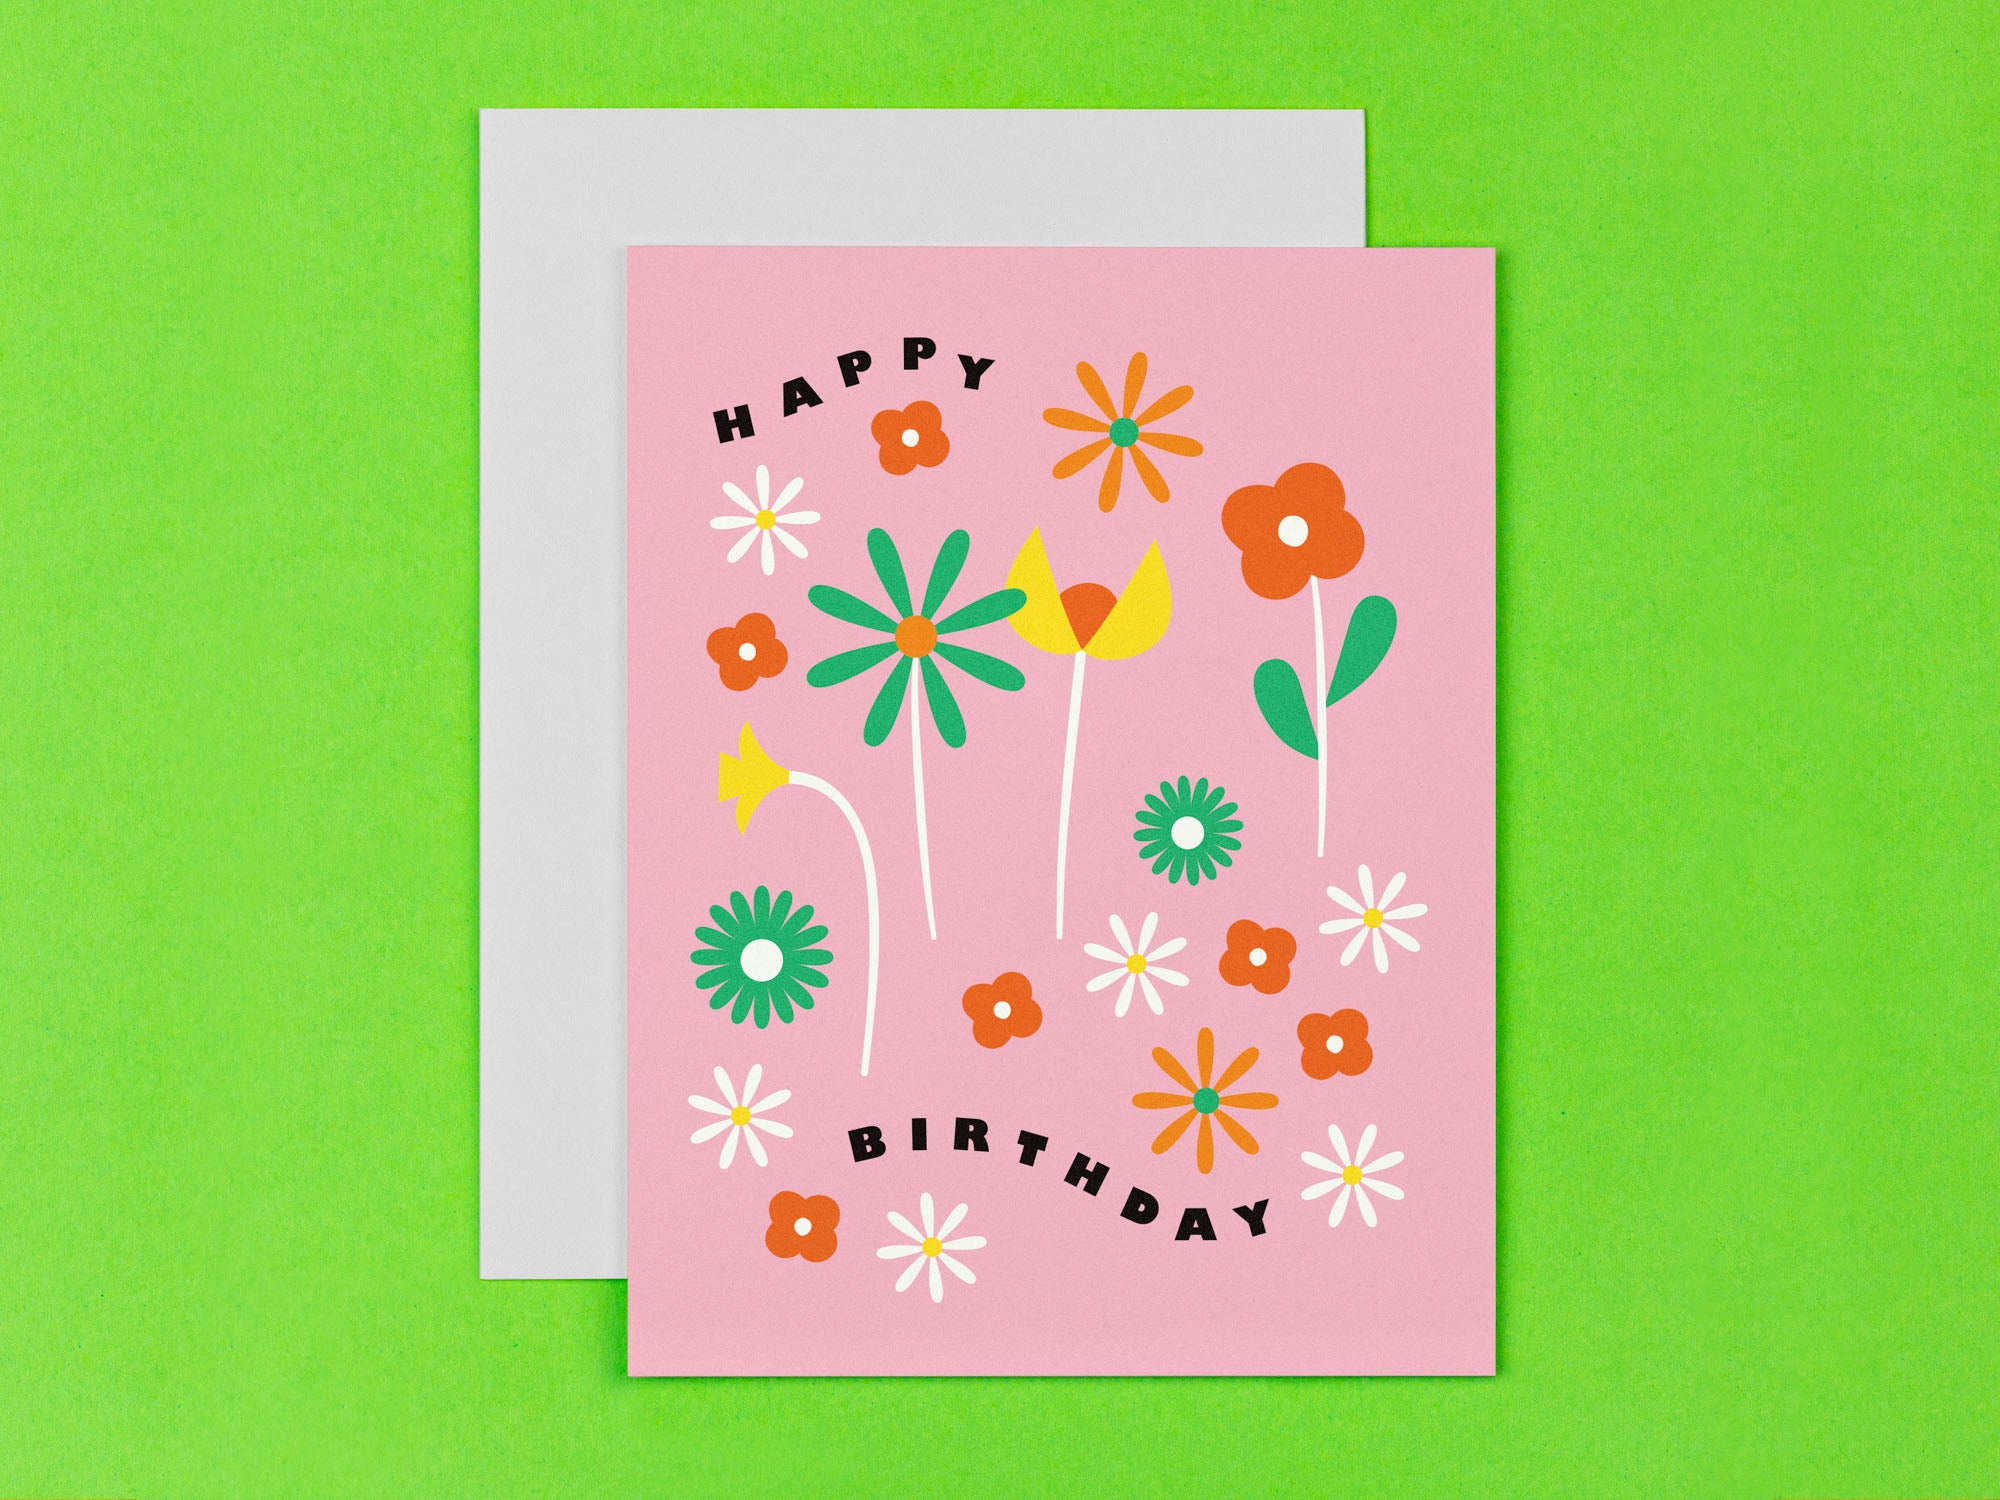 Floral happy birthday card with mid century style floral illustration. Made in USA by My Darlin' @mydarlin_bk